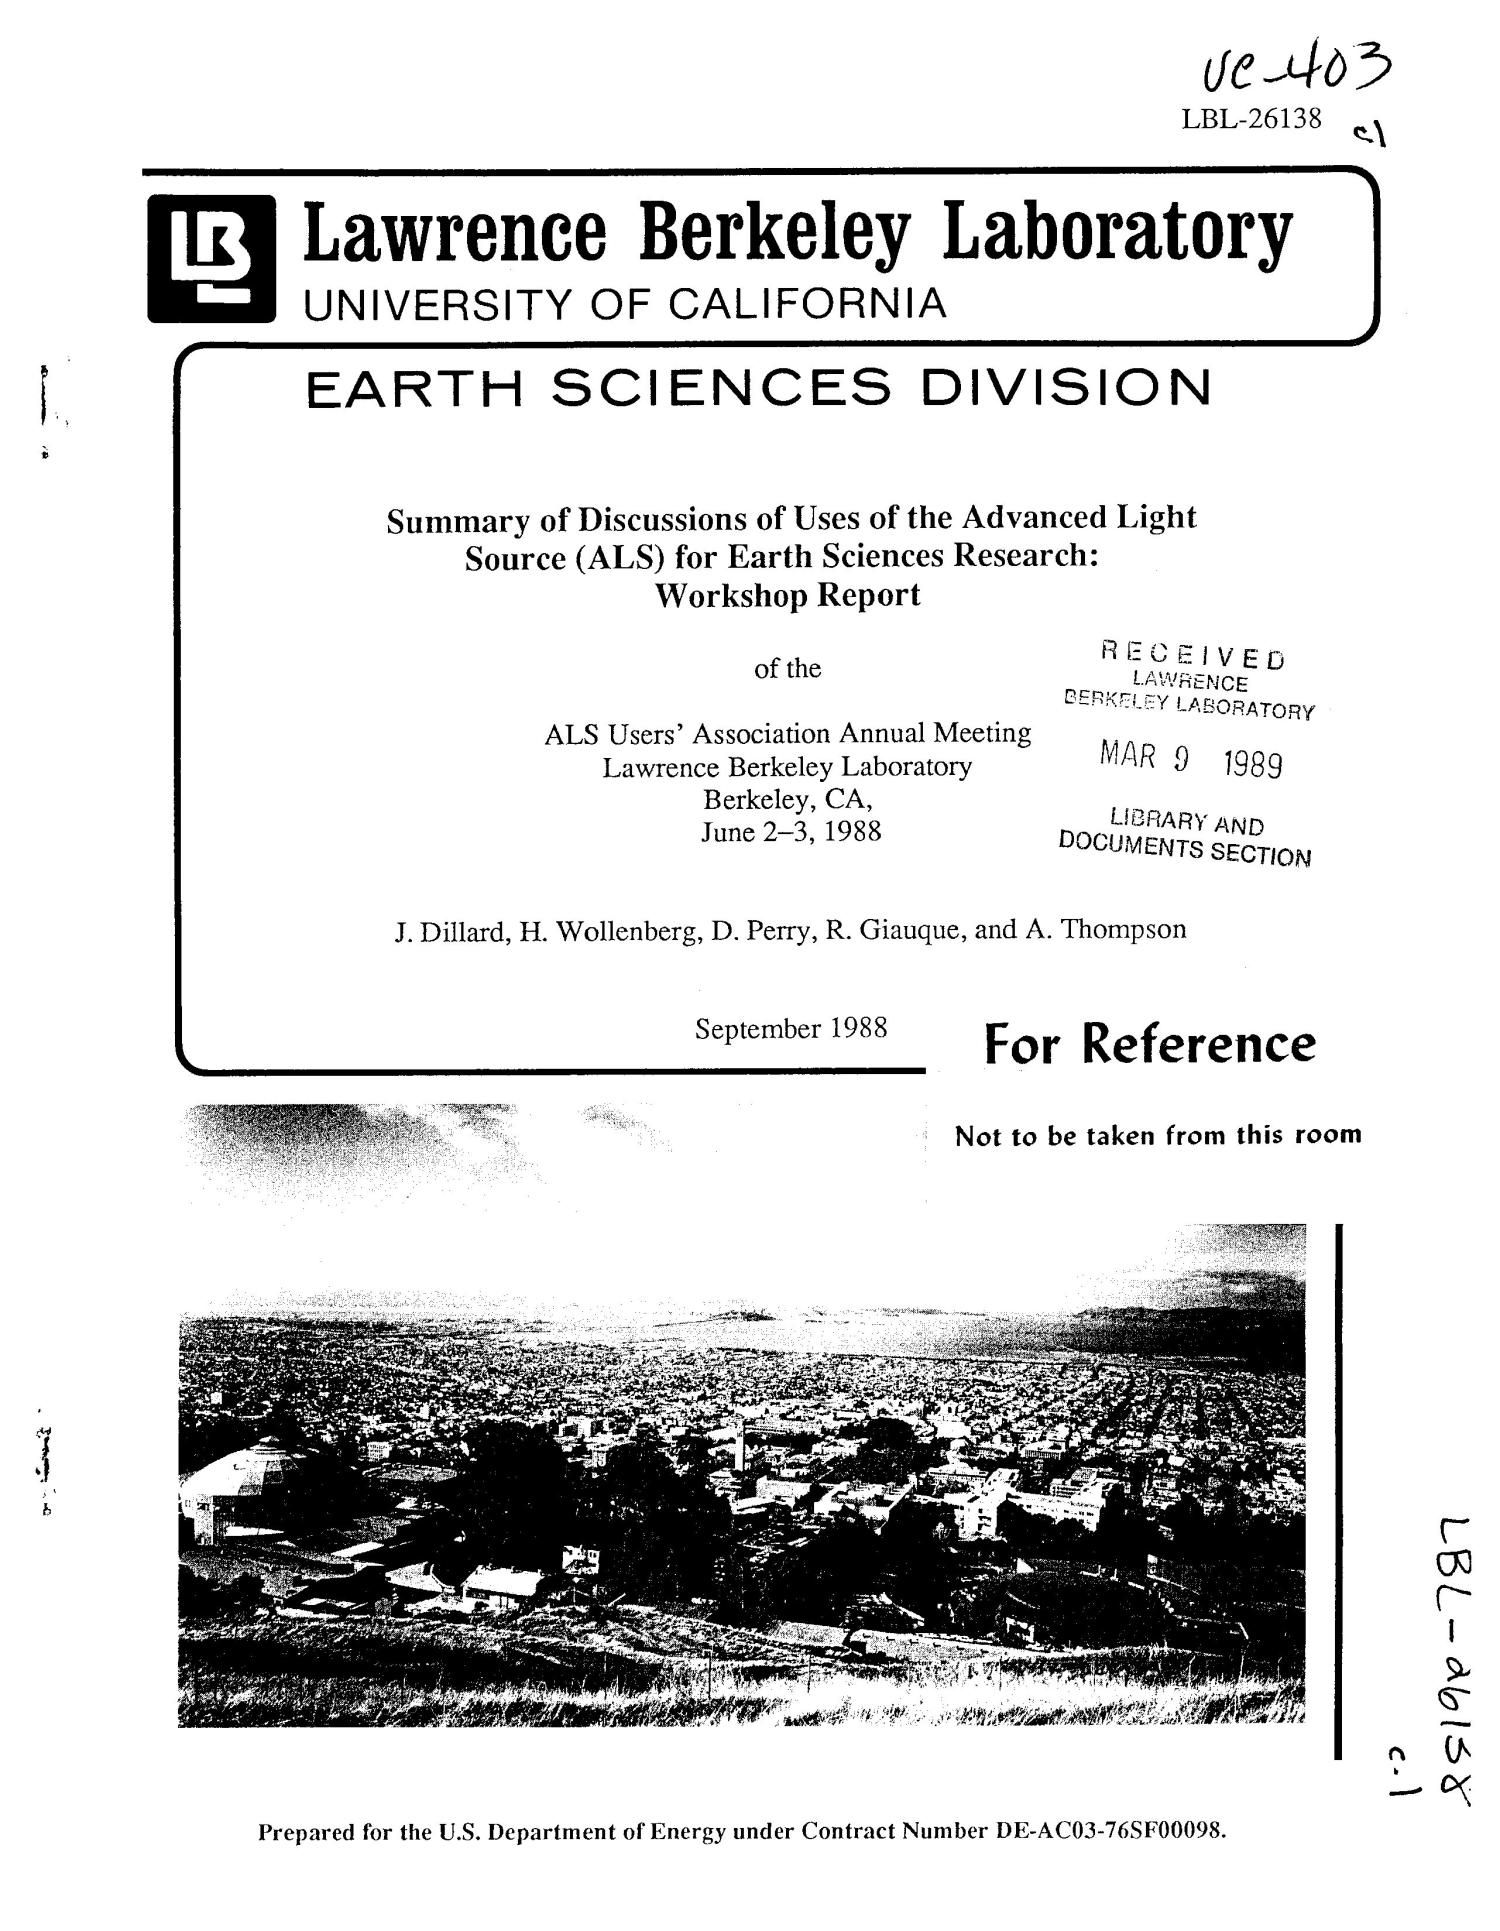 SUMMAR OF DISCUSSIONS OF USES OF THE ADVANCED LIGHT SOURCE (ALS)FOR EARTH SCIENCES RESEARCH: WORKSHOP REPORT OF THE ALS USERS'ASSOCIATION ANNUAL MEETING, LAWRENCE BERKELEY LABORATORY, BERKELEY,CA,JUNE 2-3, 1988                                                                                                      [Sequence #]: 1 of 12